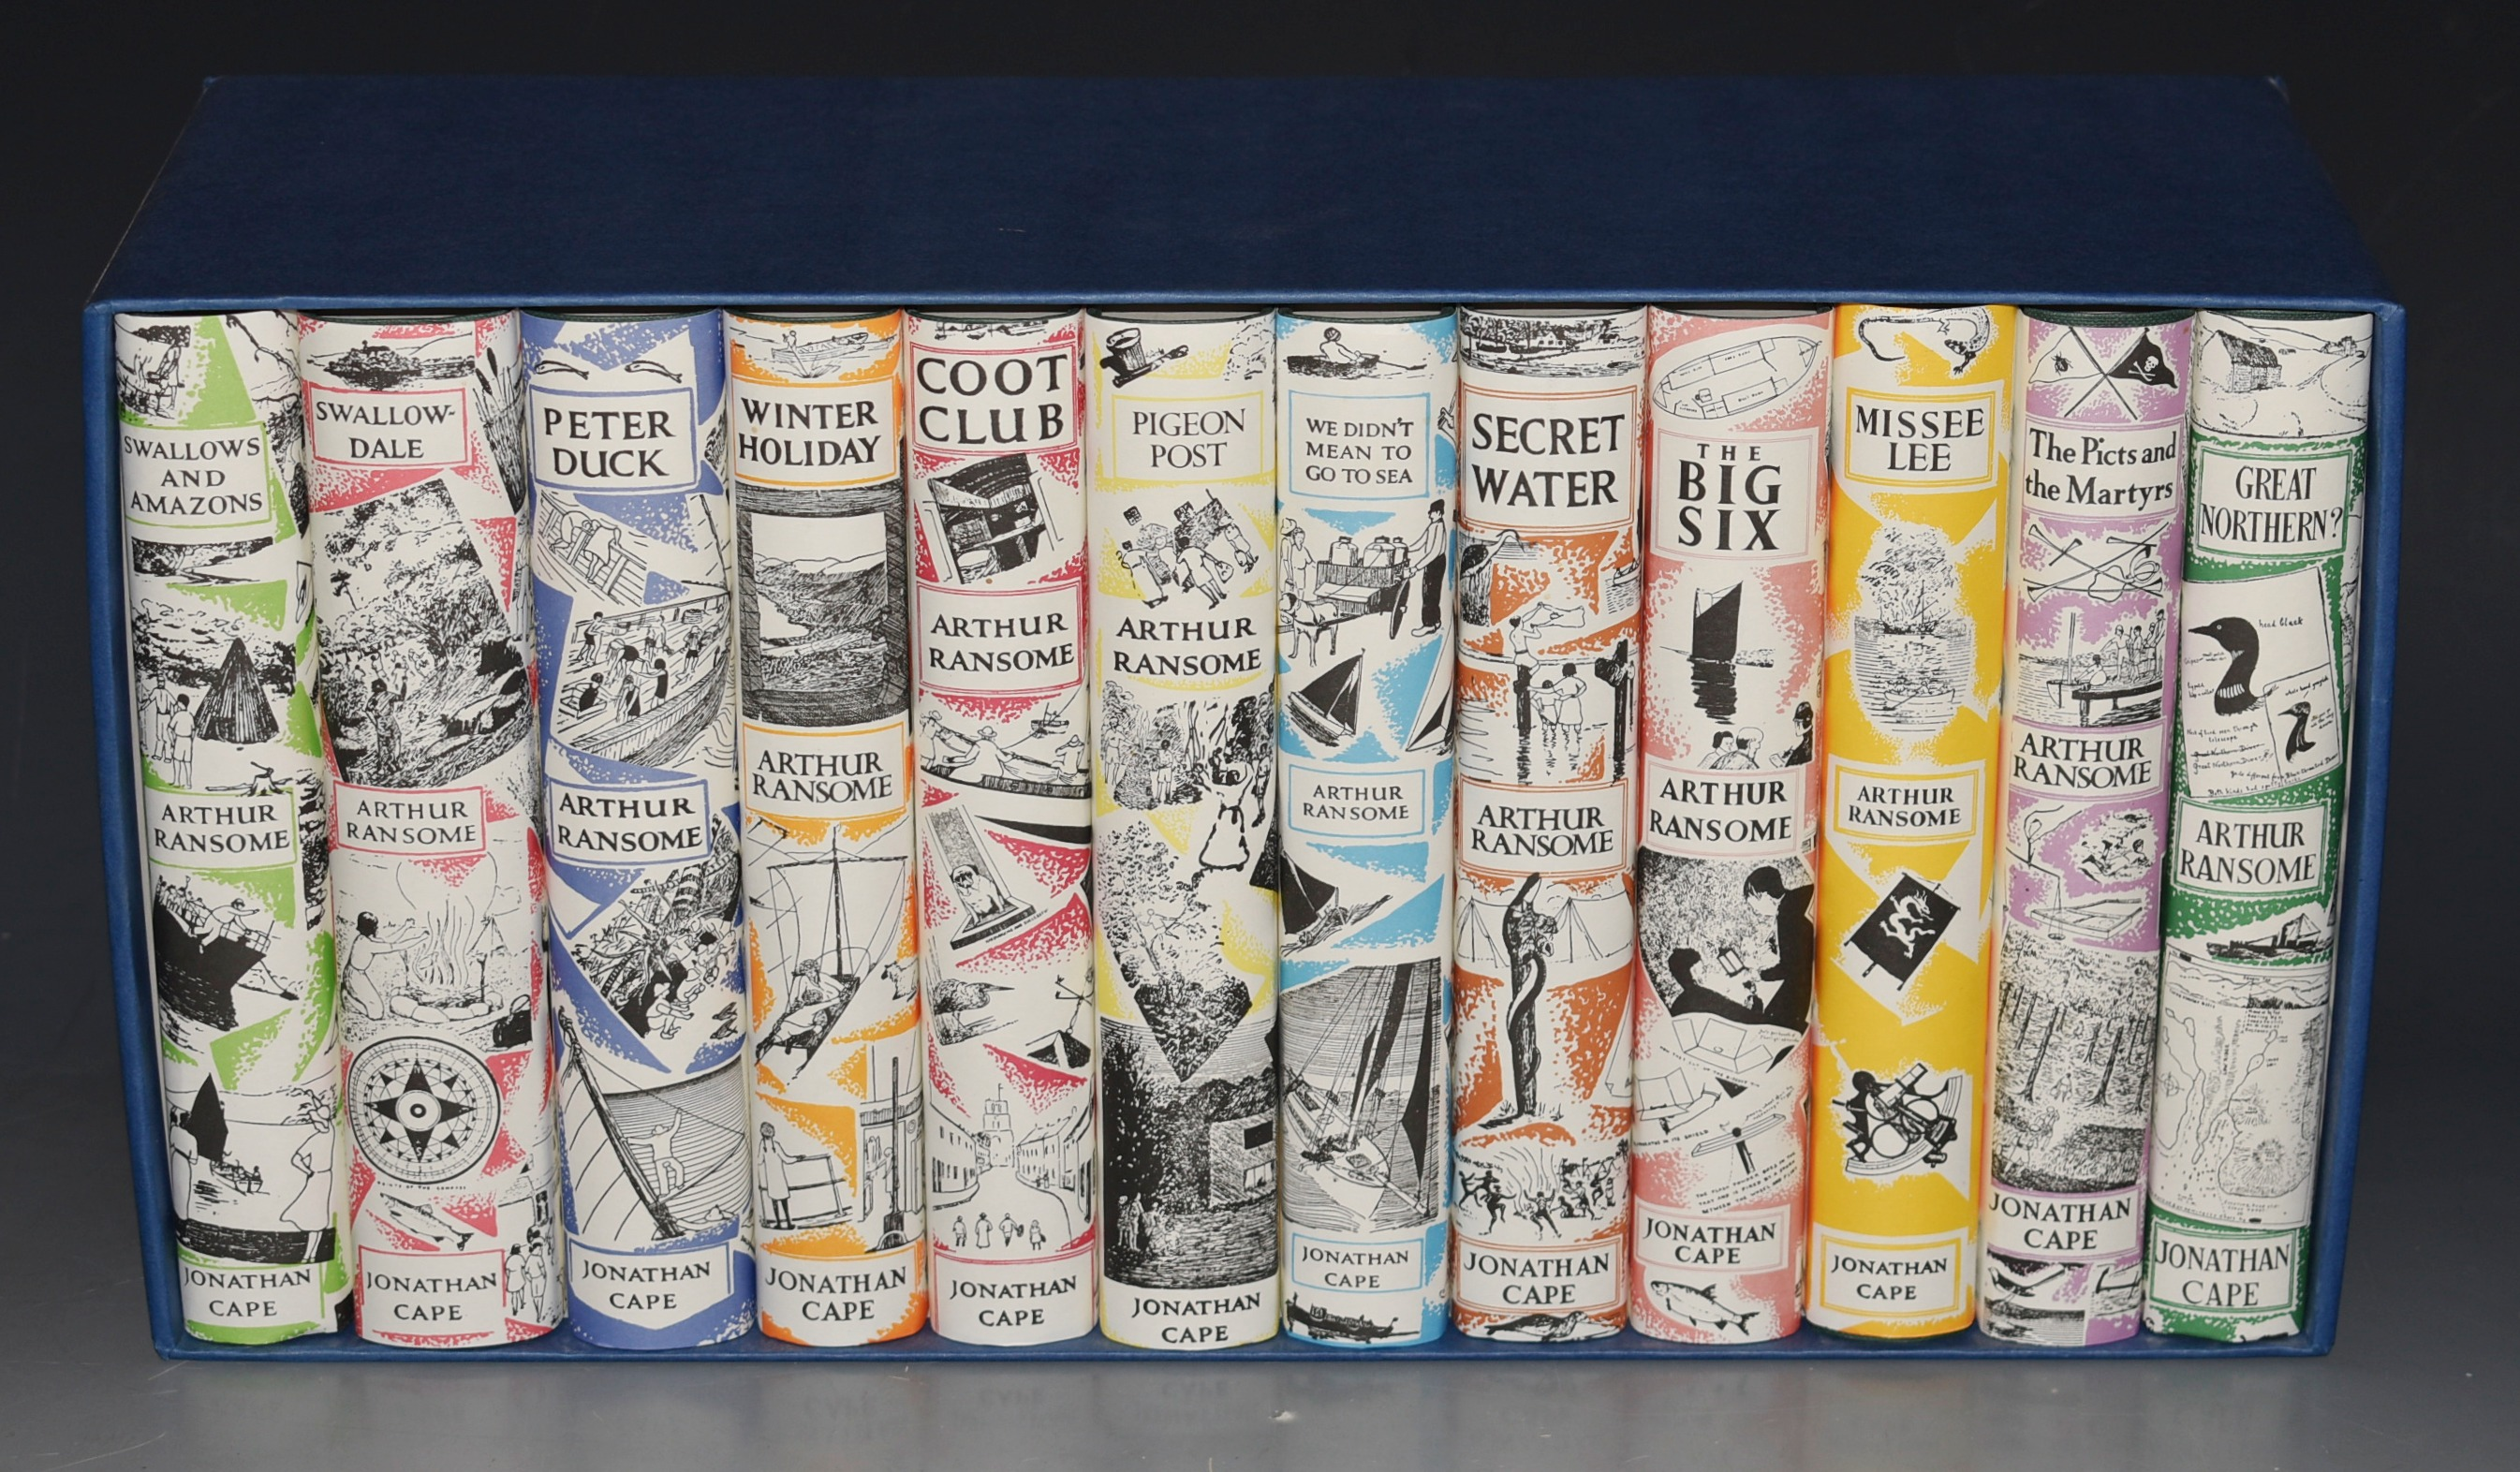 Image for The Classic Boating Novels of Arthur Ransome Swallows and Amazons; Swallowdale; Peter Duck; Winter Holiday; Coot Club; Pigeon Post; We Didn't Mean to Go to Sea; Secret Water; The Big Six; Missee Lee; Picts & Martyrs; Great Northern?. Twelve Volumes in Slipcase.